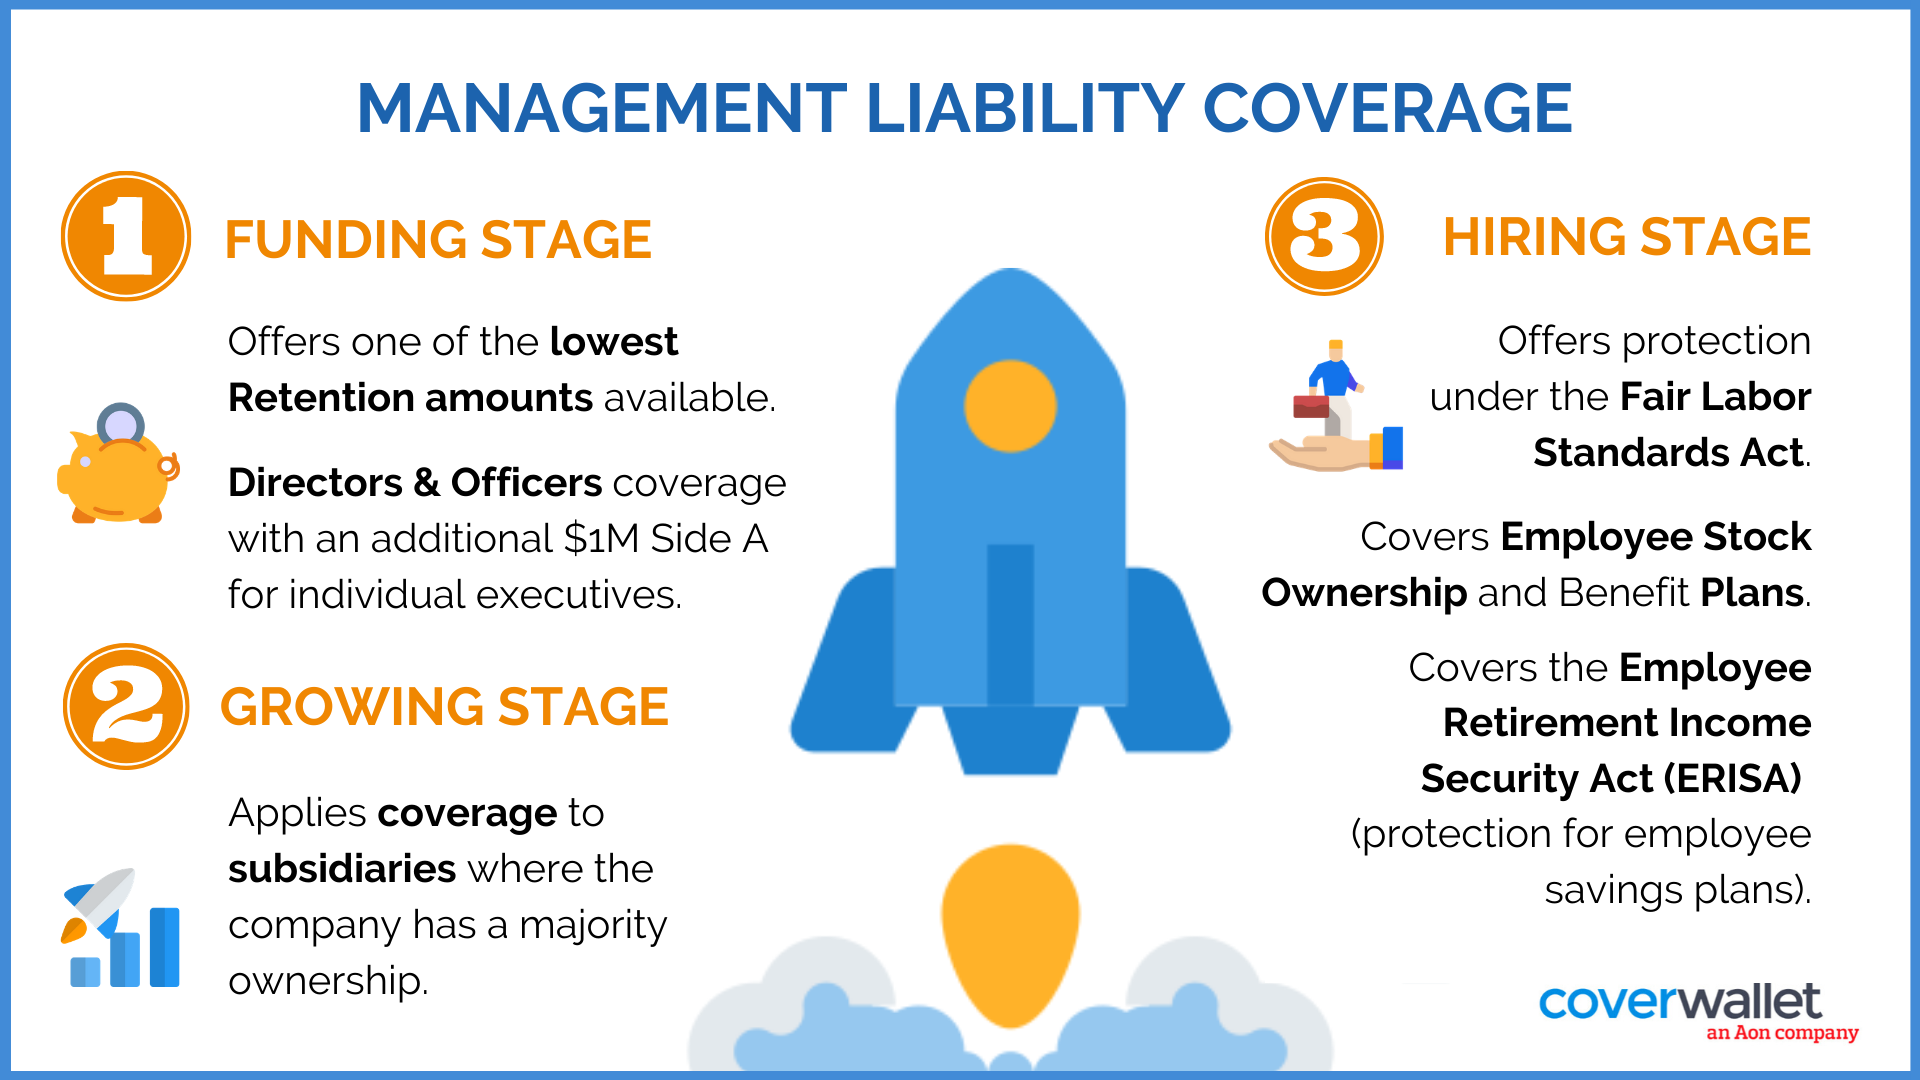 Management Liability Insurance